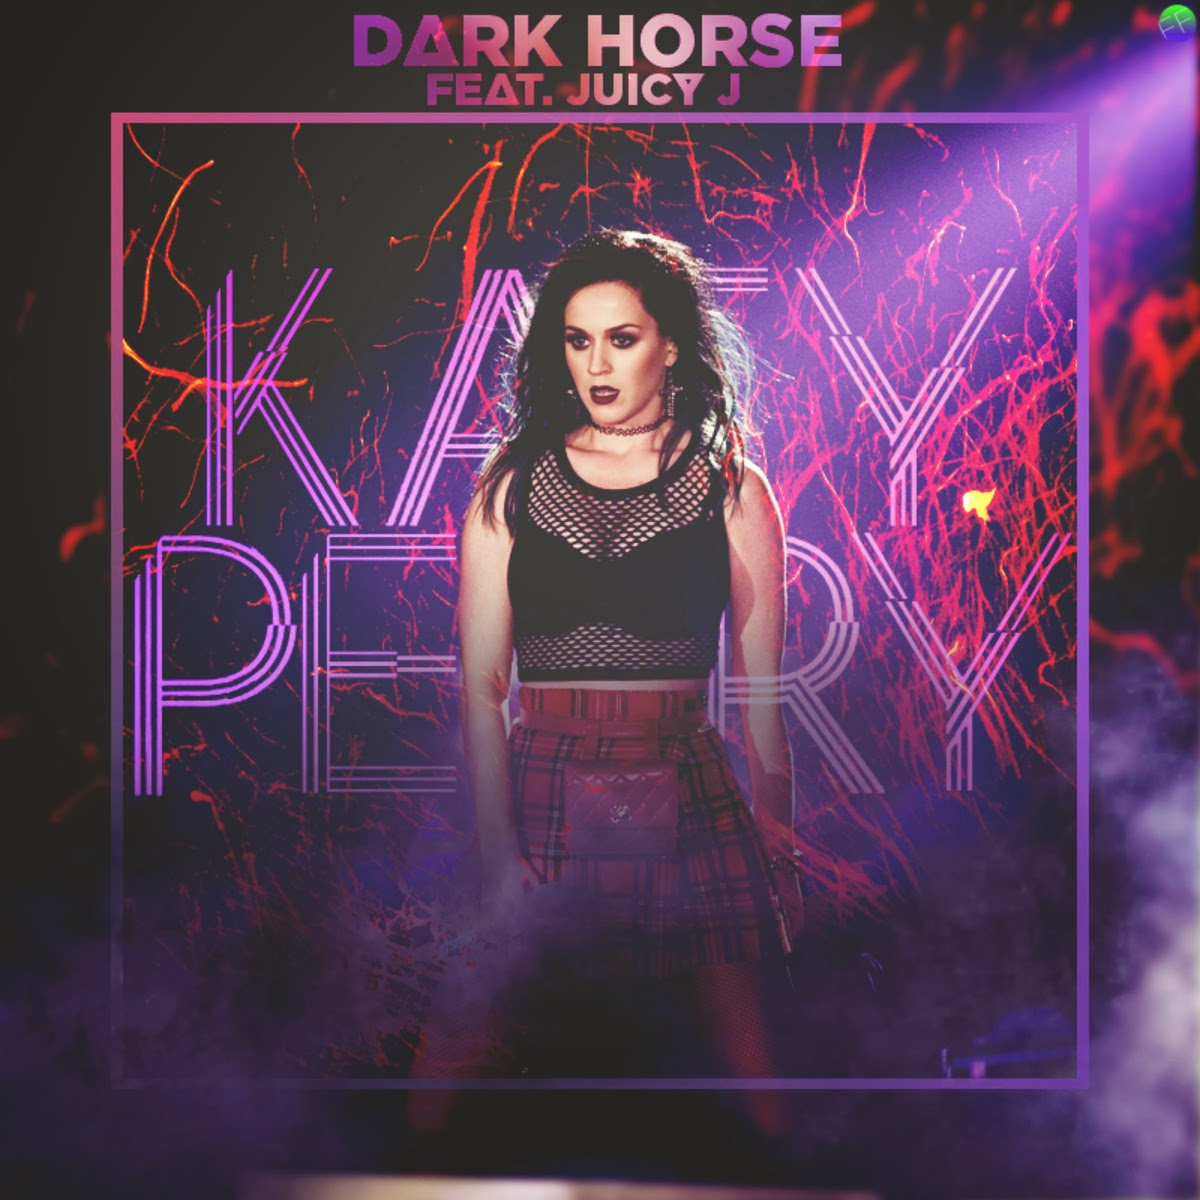 Katy Perry's 'Dark Horse' music video released! Watch it here